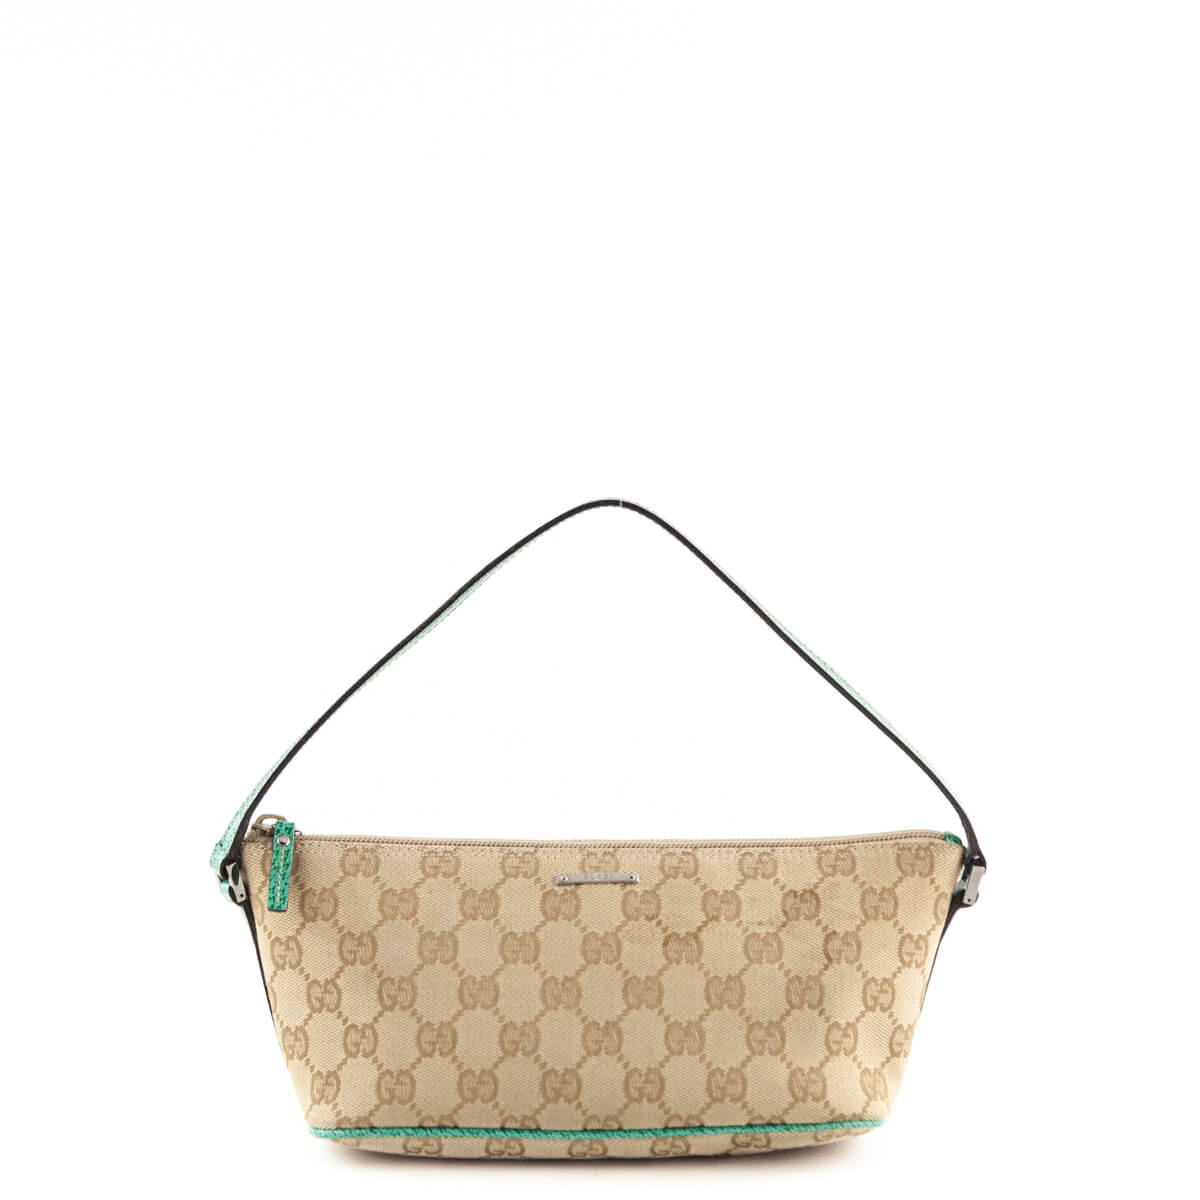 b886de4fafc326 Gucci Beige & Green Monogram Canvas GG Pochette - LOVE that BAG - Preowned  Authentic Designer ...